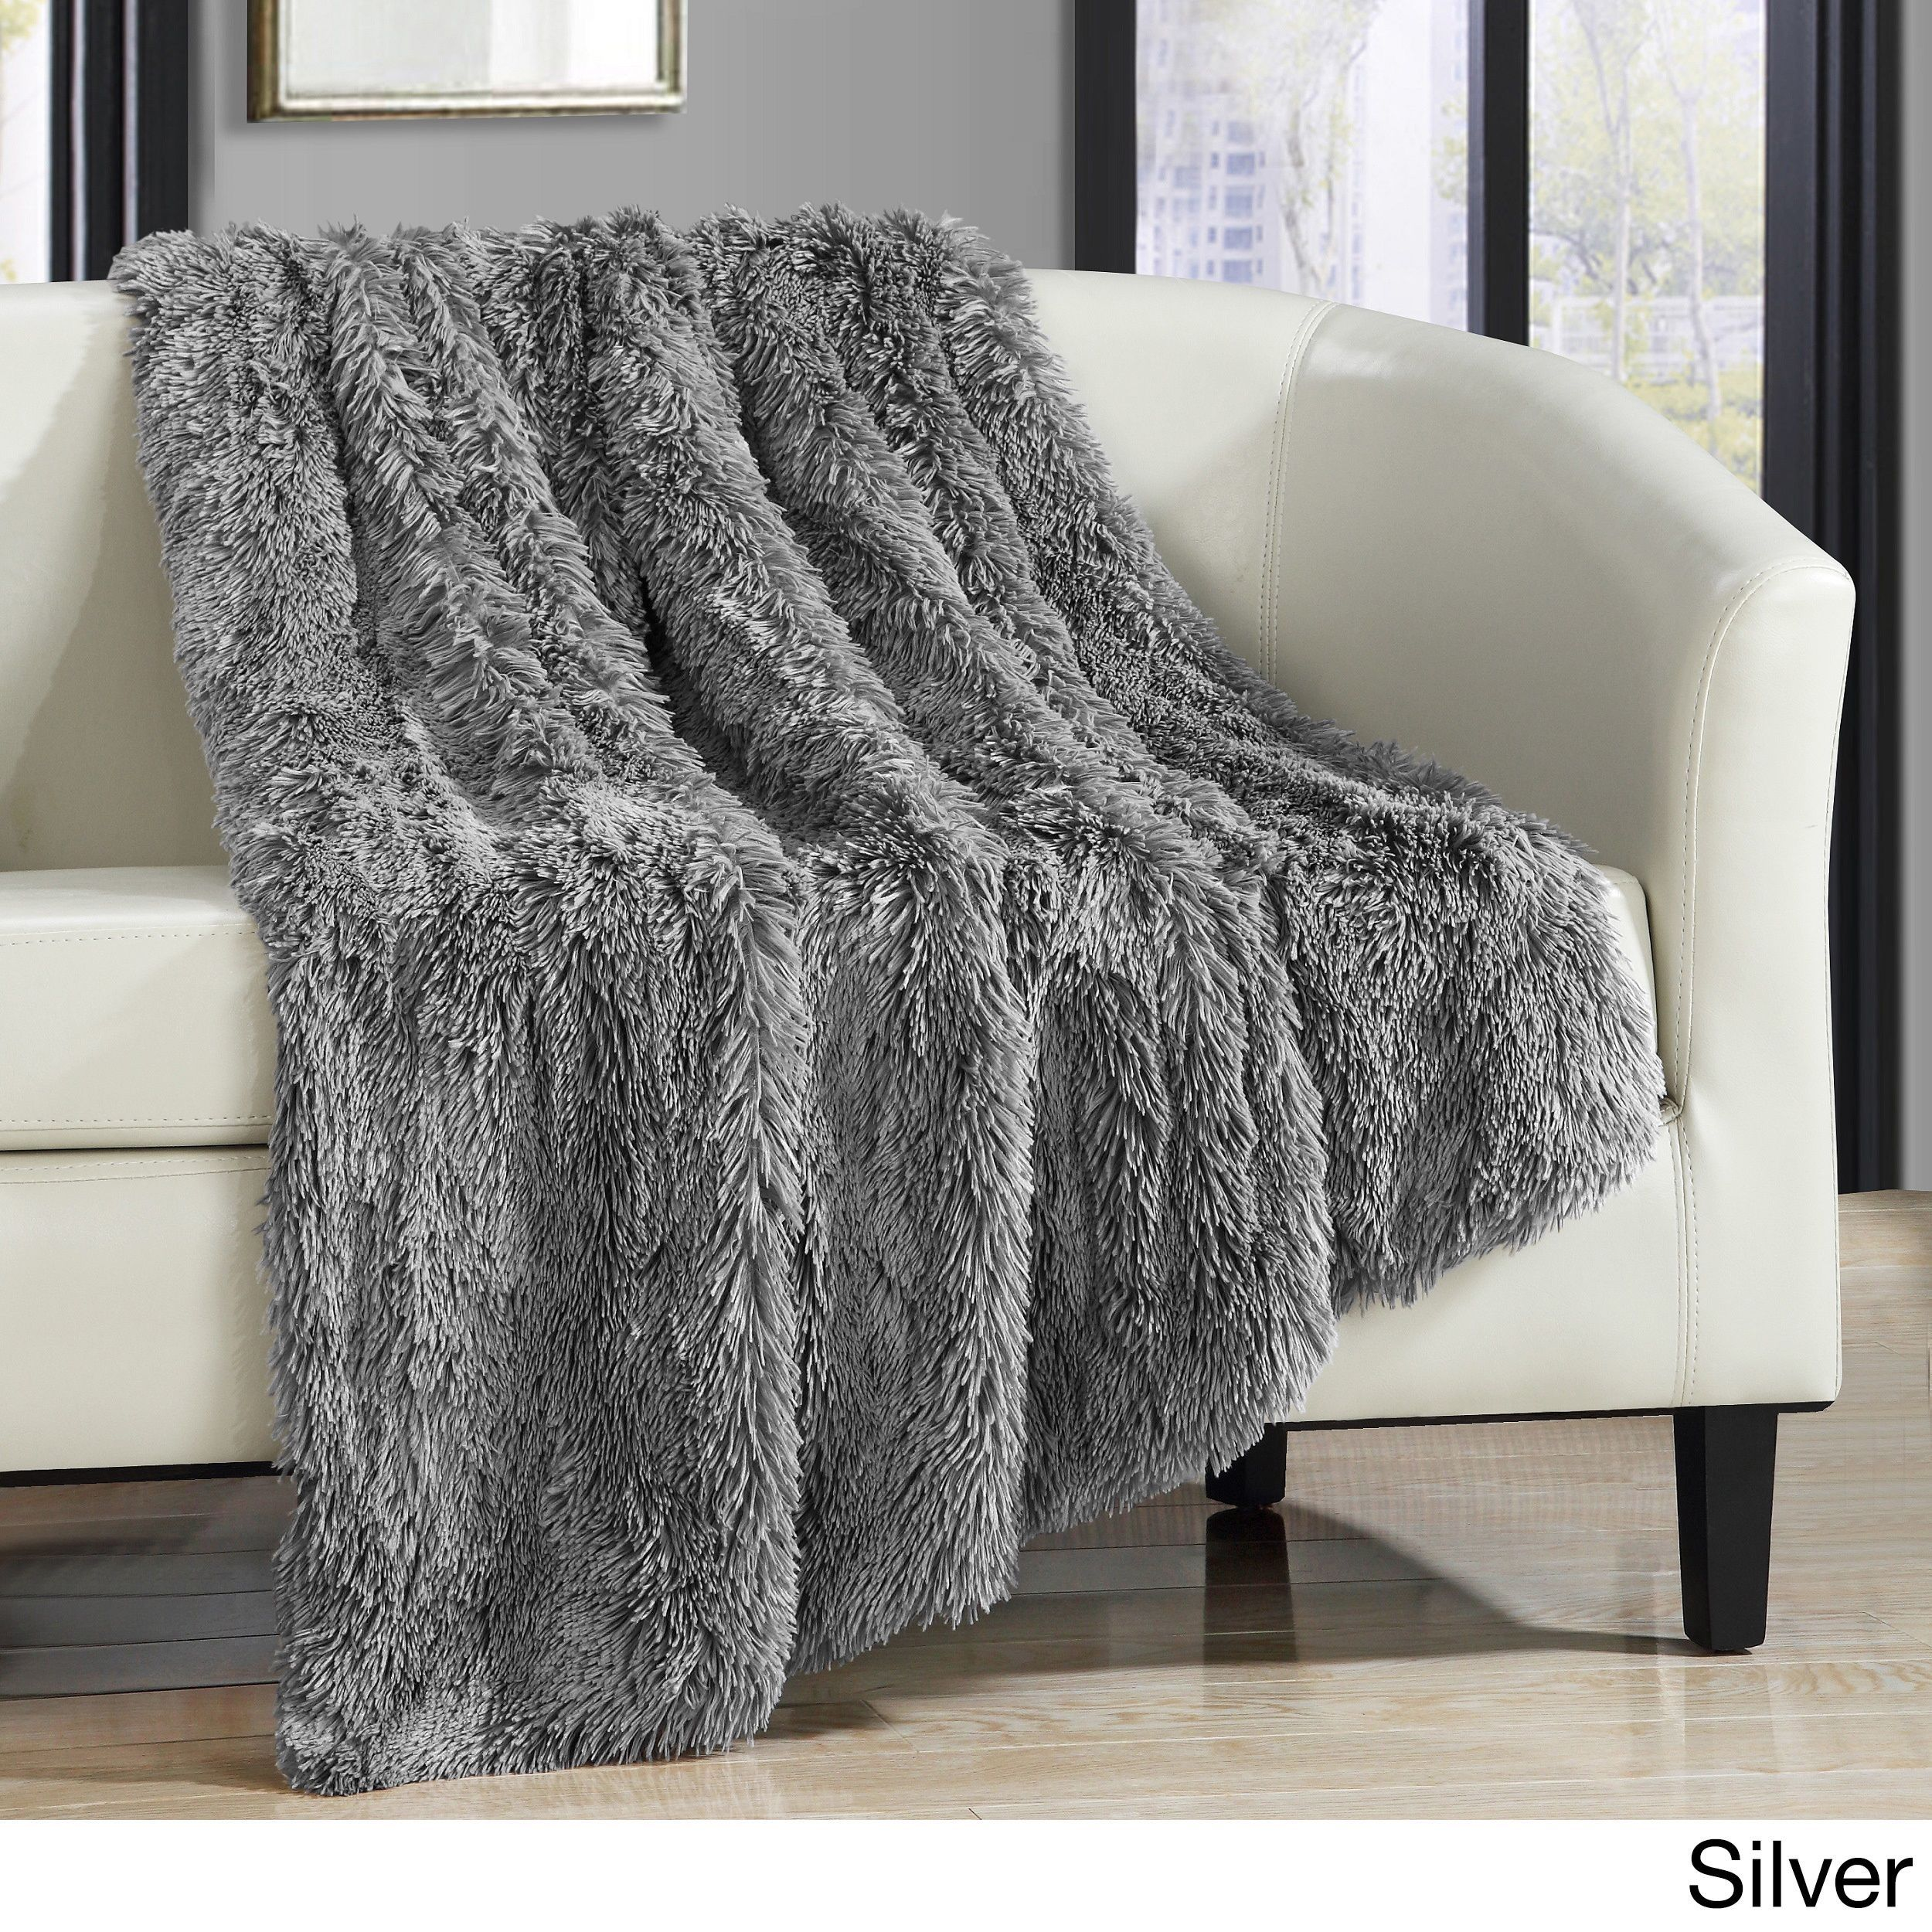 Overstock Com Online Shopping Bedding Furniture Electronics Jewelry Clothing More Decorative Throws Blanket Plush Throw Blankets Faux Fur Throw Blanket